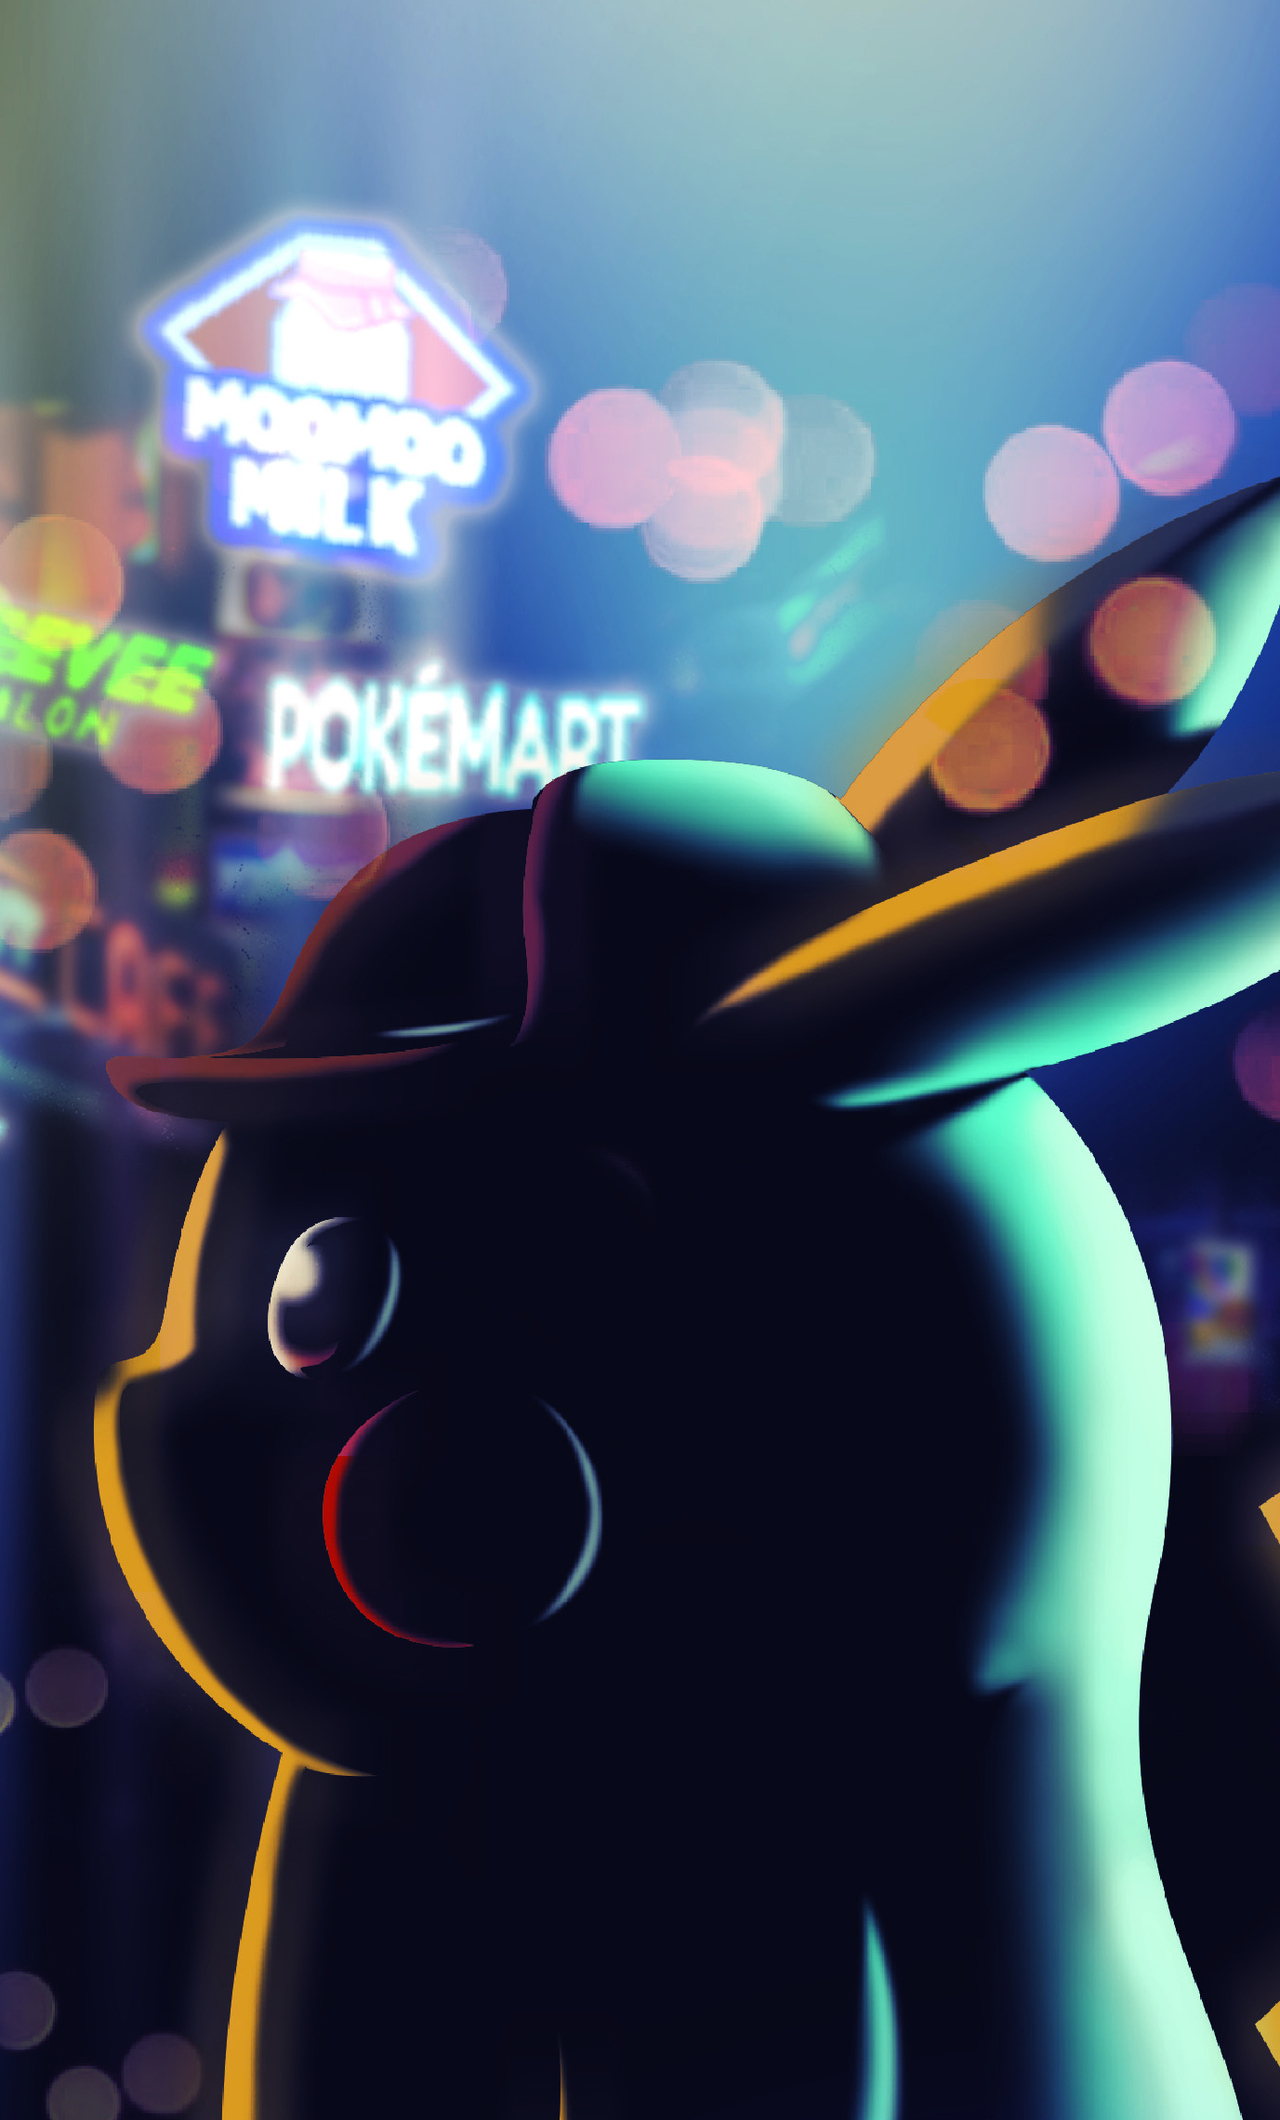 1280x2120 Pokemon Detective Pikachu Iphone 6 Hd 4k